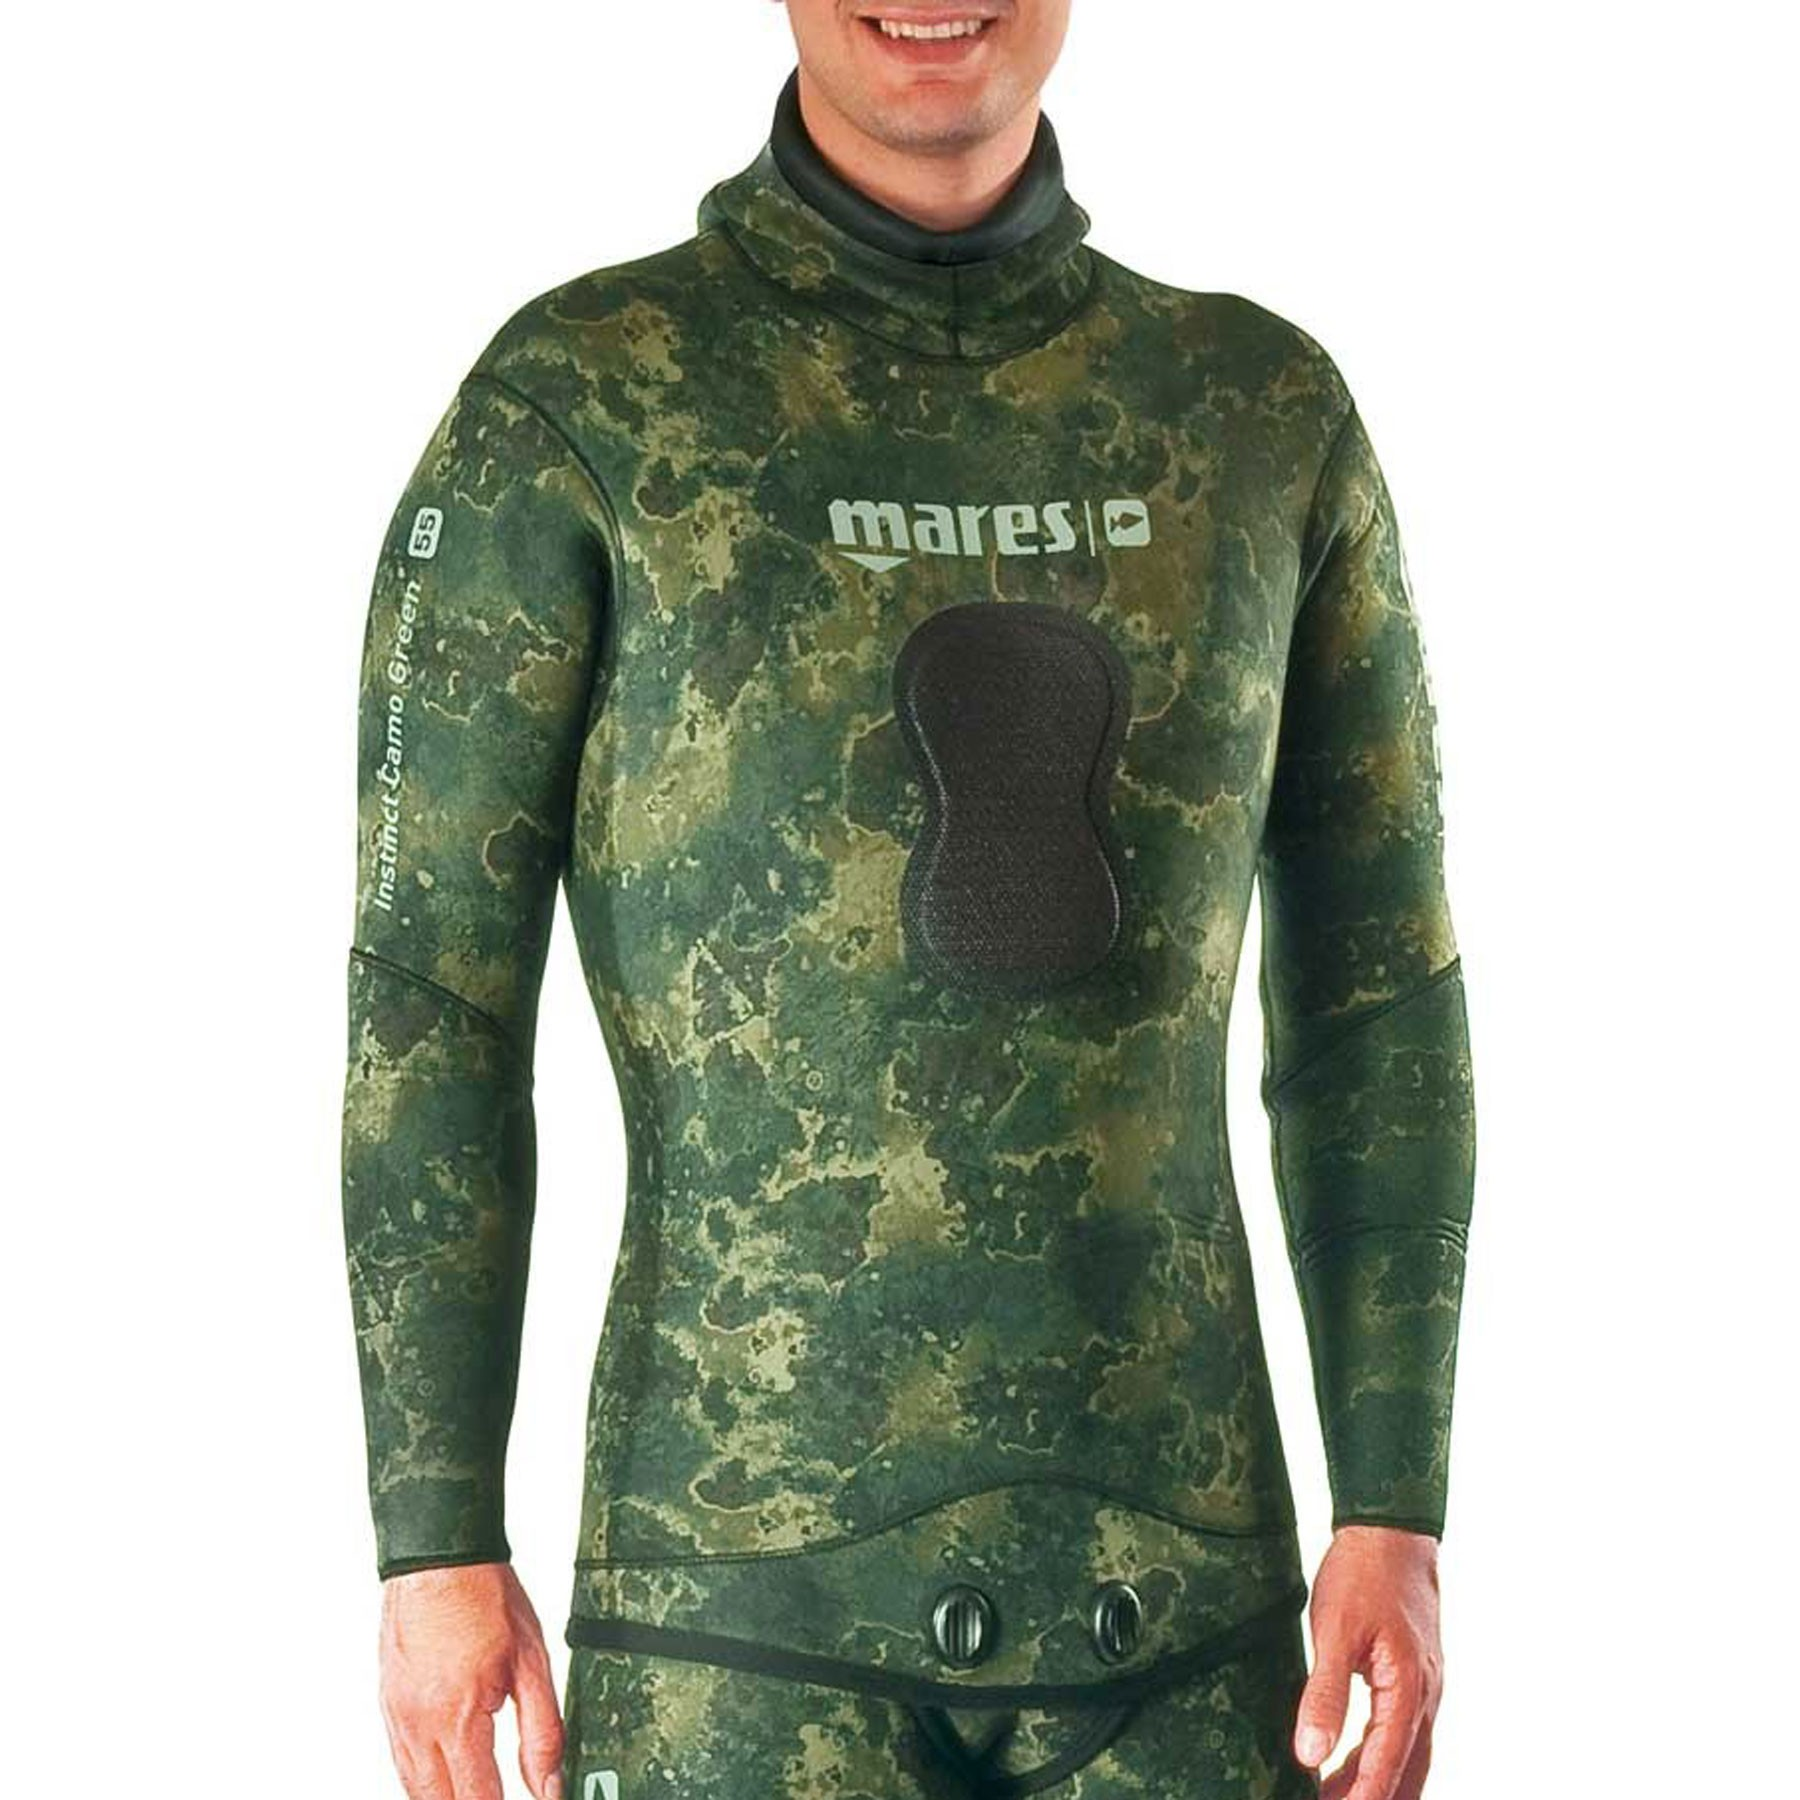 Mares Instinct Camo Green 55 Scuba Diving Wetsuit Jacket